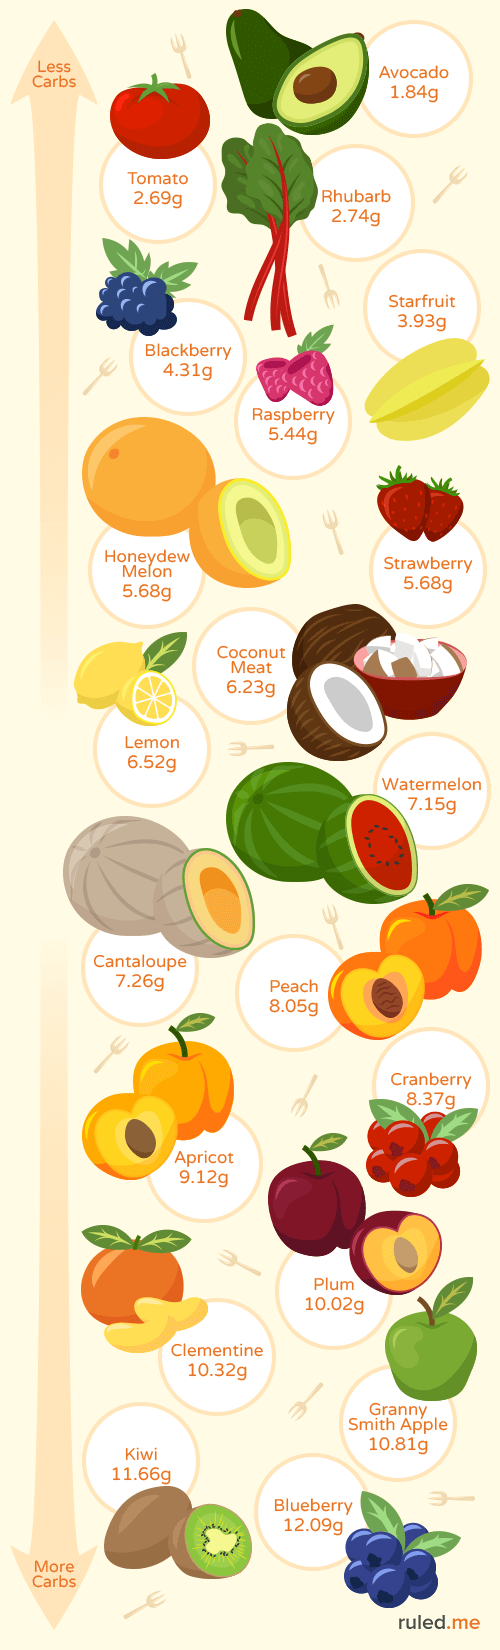 best low carb fruits and which to avoid ruled me